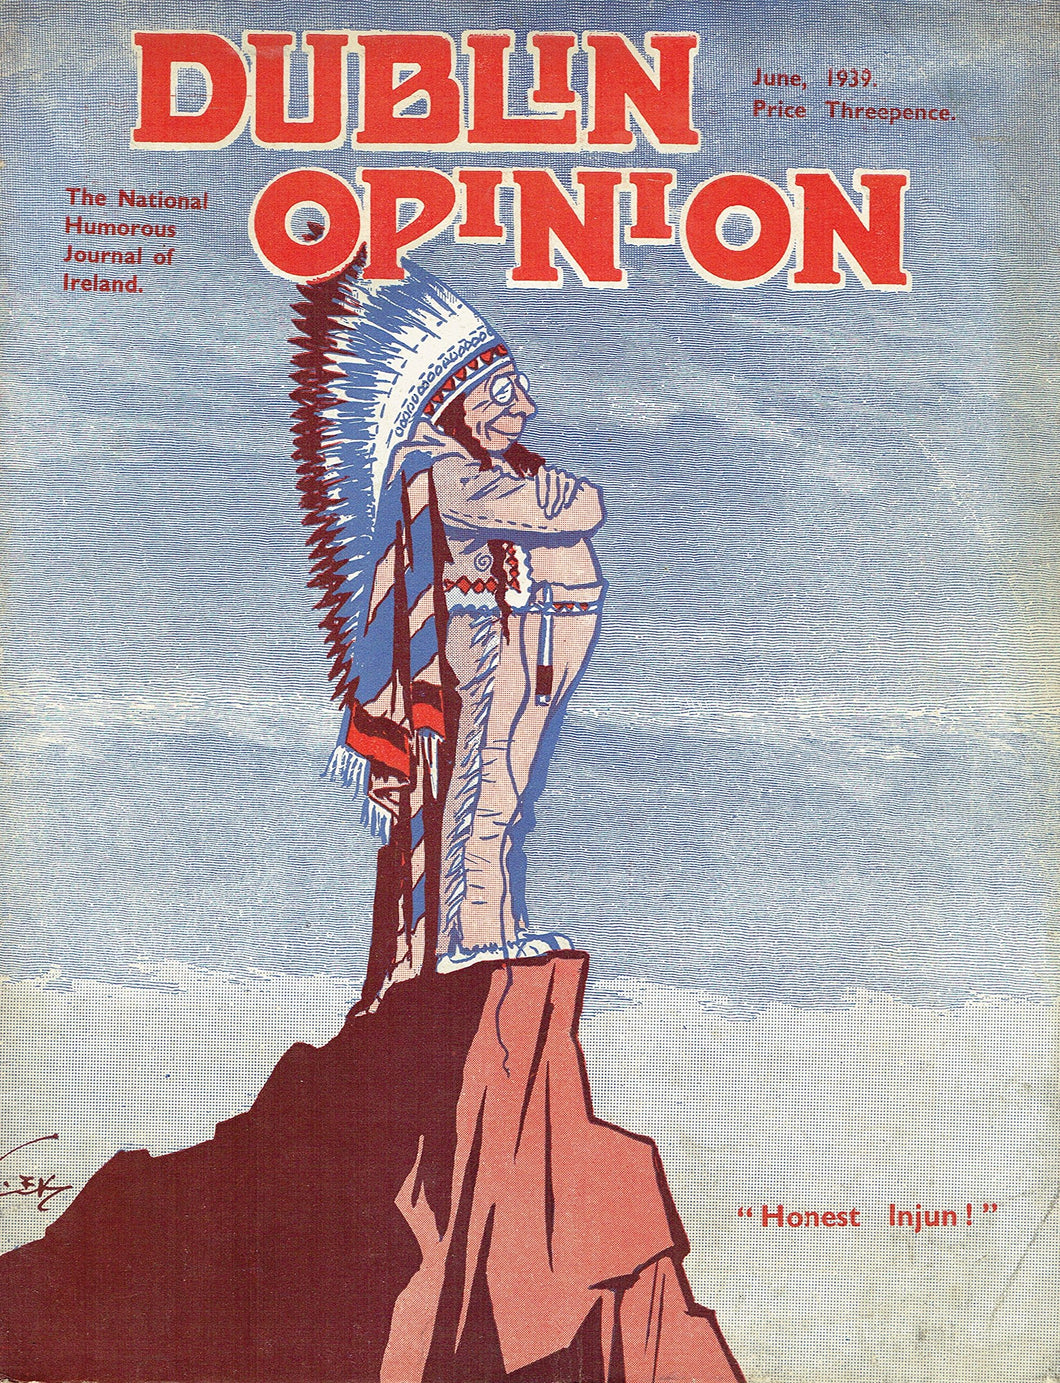 Dublin Opinion: The National Humorous Journal of Ireland - June 1939